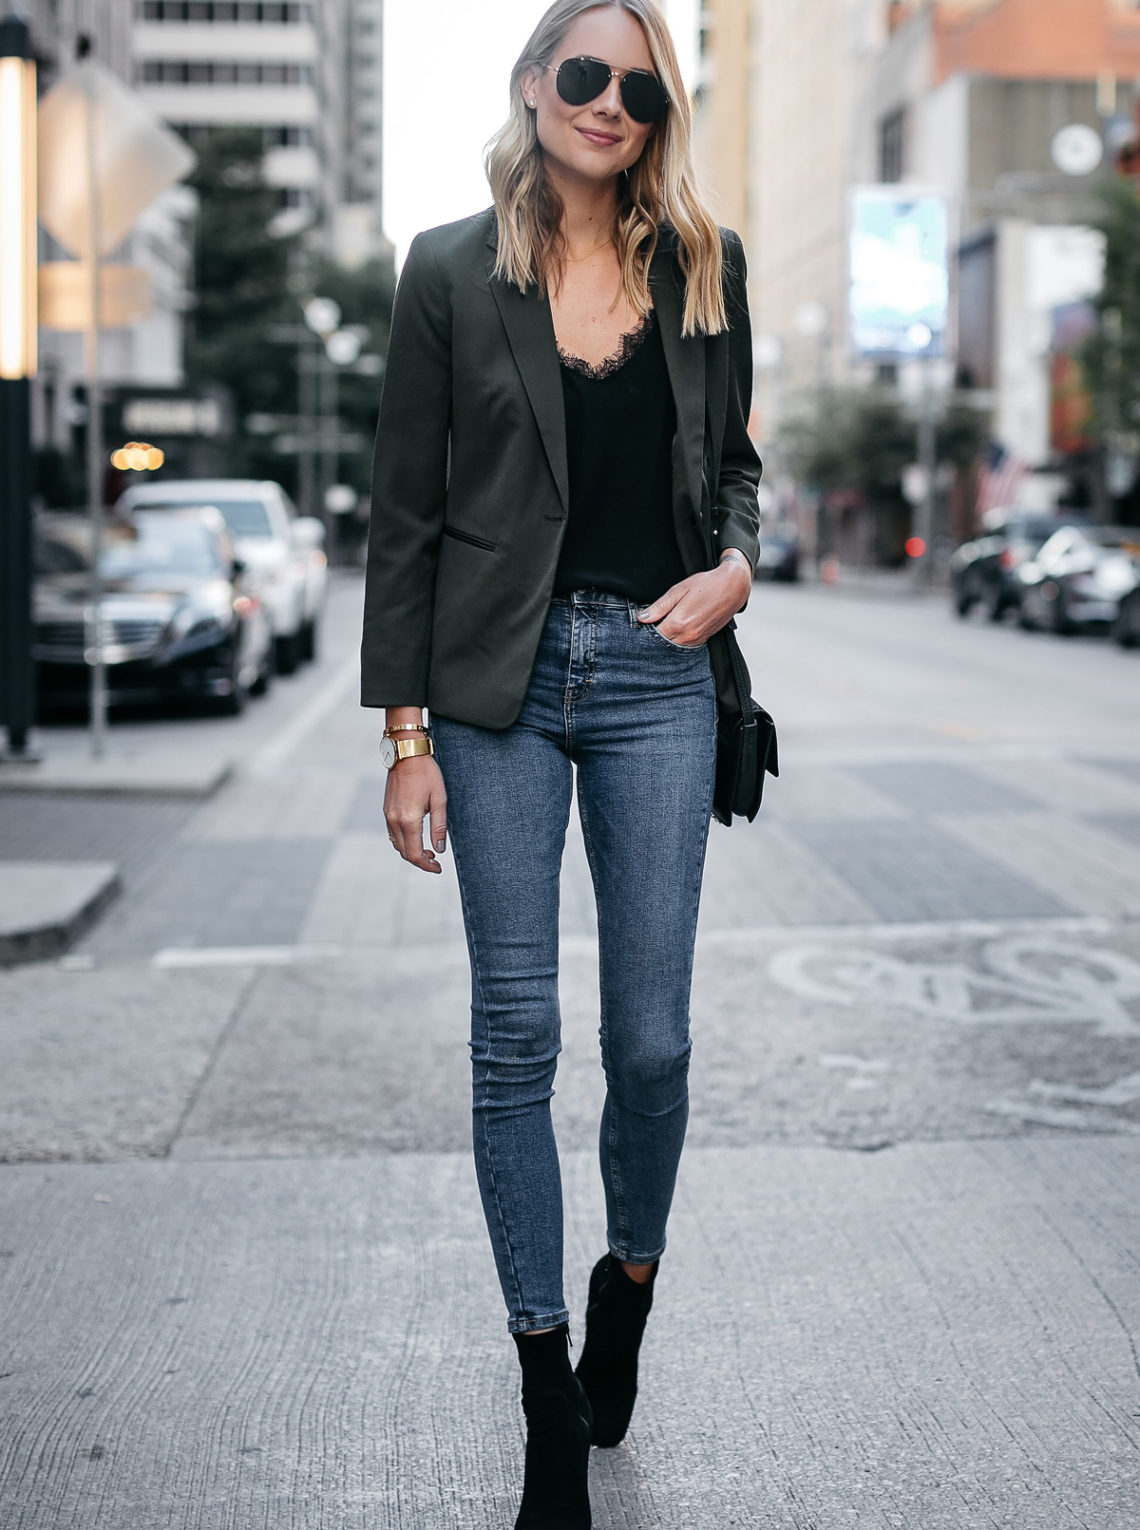 Blonde Woman Wearing Everlane Green Blazer Anine Bing Black Lace Cami Topshop Denim Skinny Jeans Club Monaco Black Booties Fashion Jackson Dallas Blogger Fashion Blogger Street Style